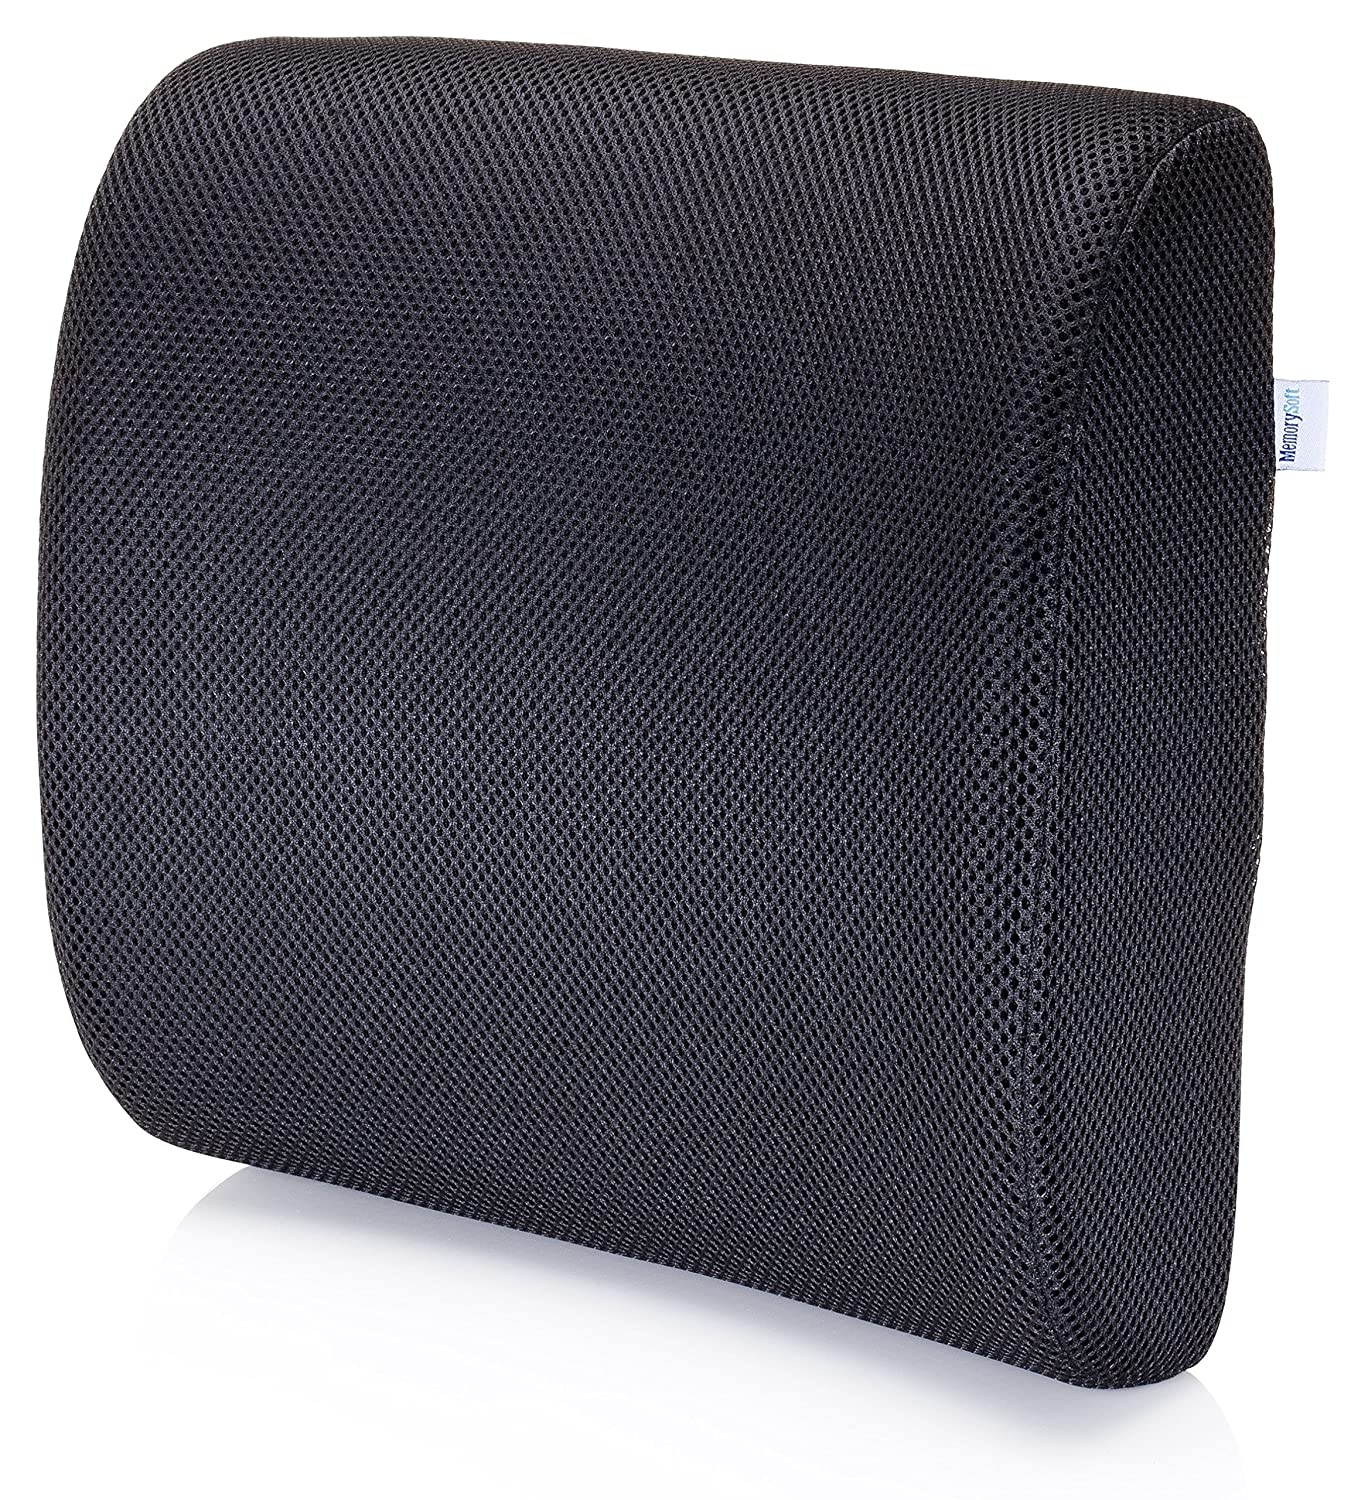 Best Lumbar Back Support Cushions For Cars And Office